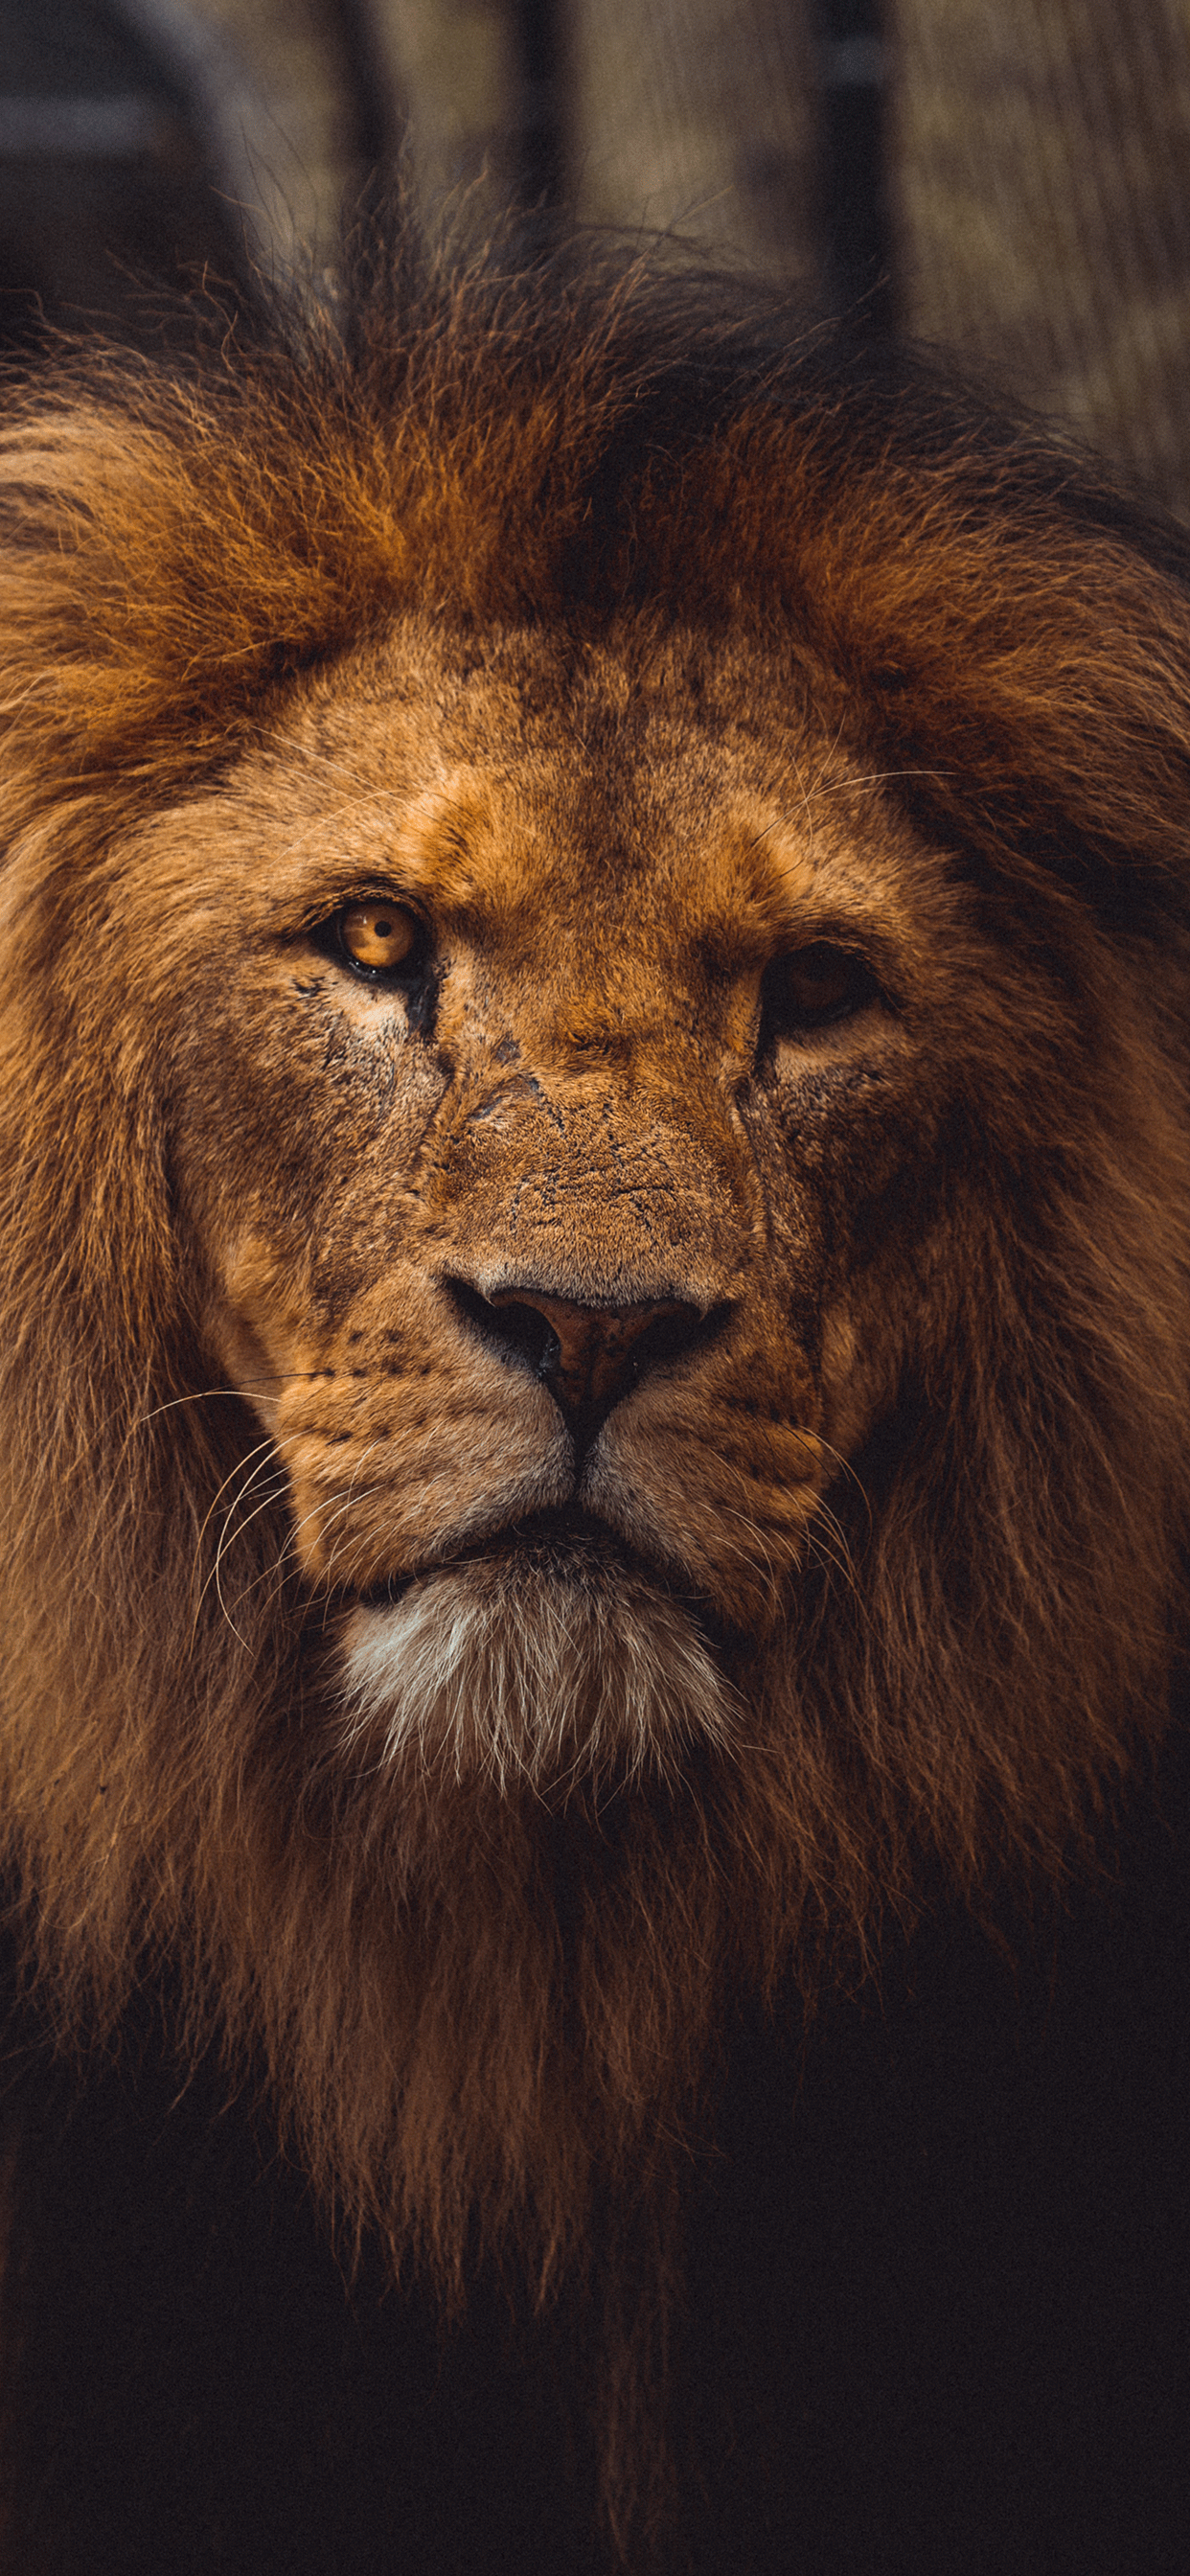 iPhone wallpaper lion eye Fonds d'écran iPhone du 12/02/2019